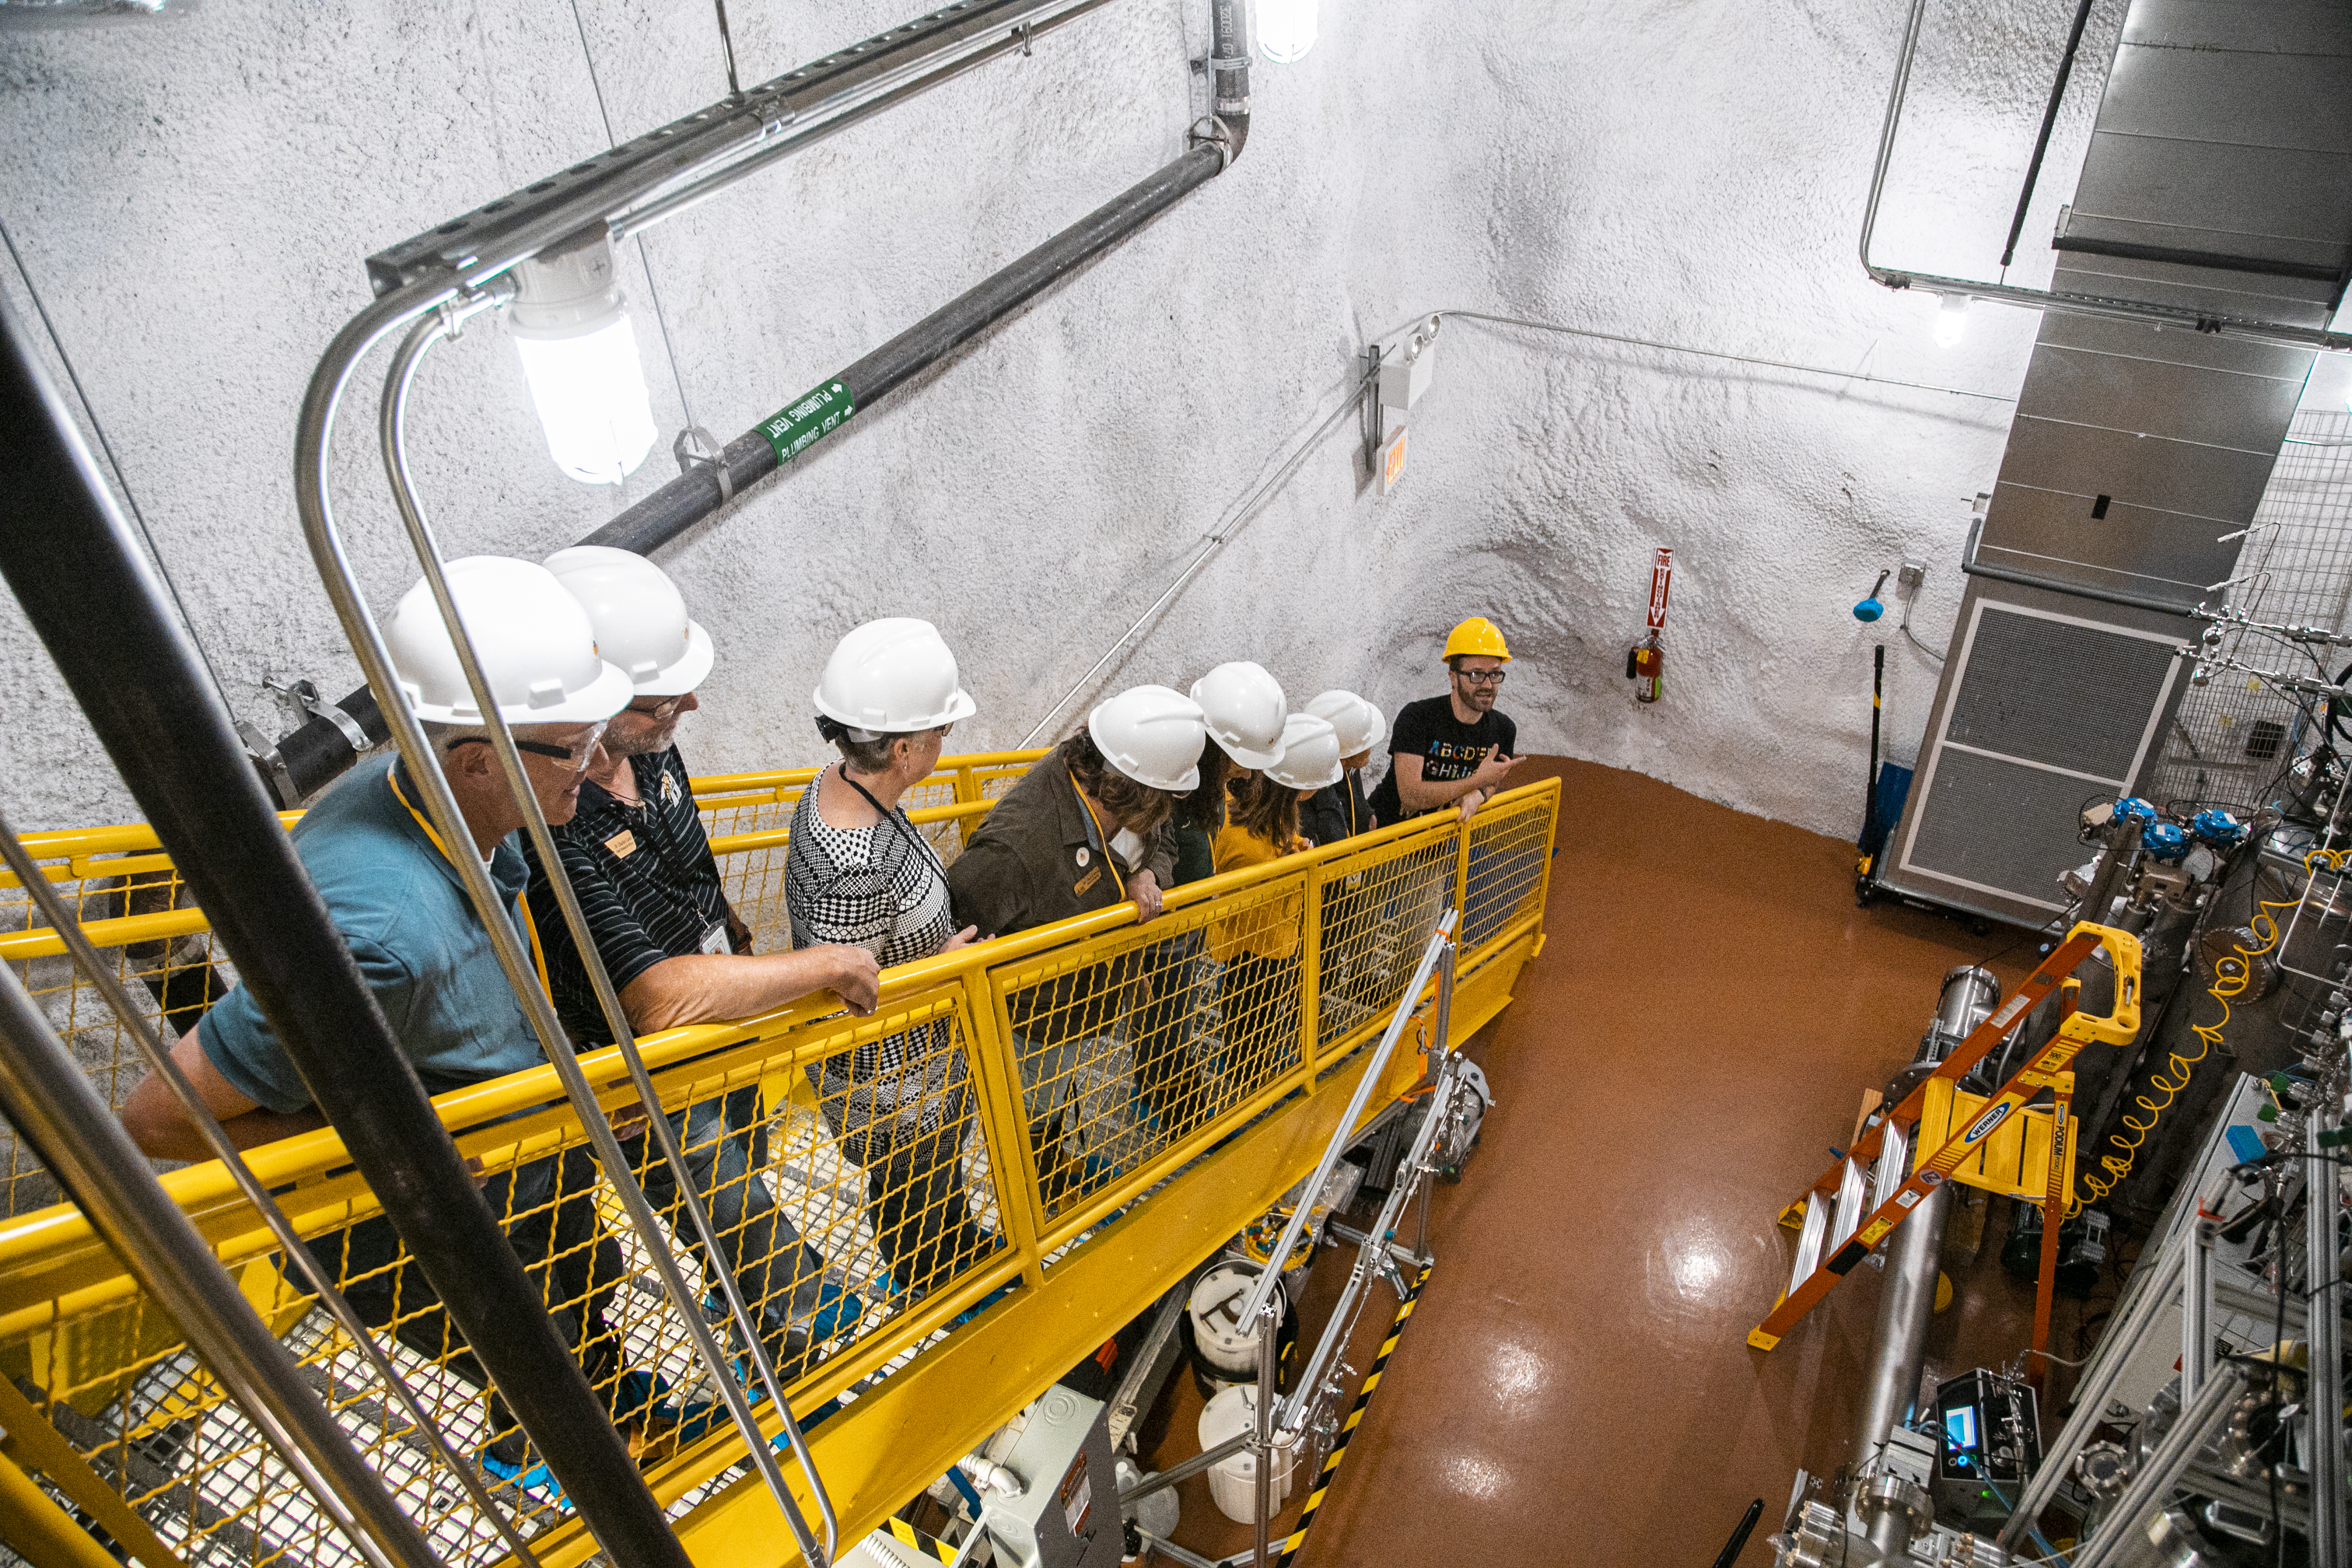 Group visits Davis Cavern, where the LUX-ZEPLIN dark matter experiment is being assembled.